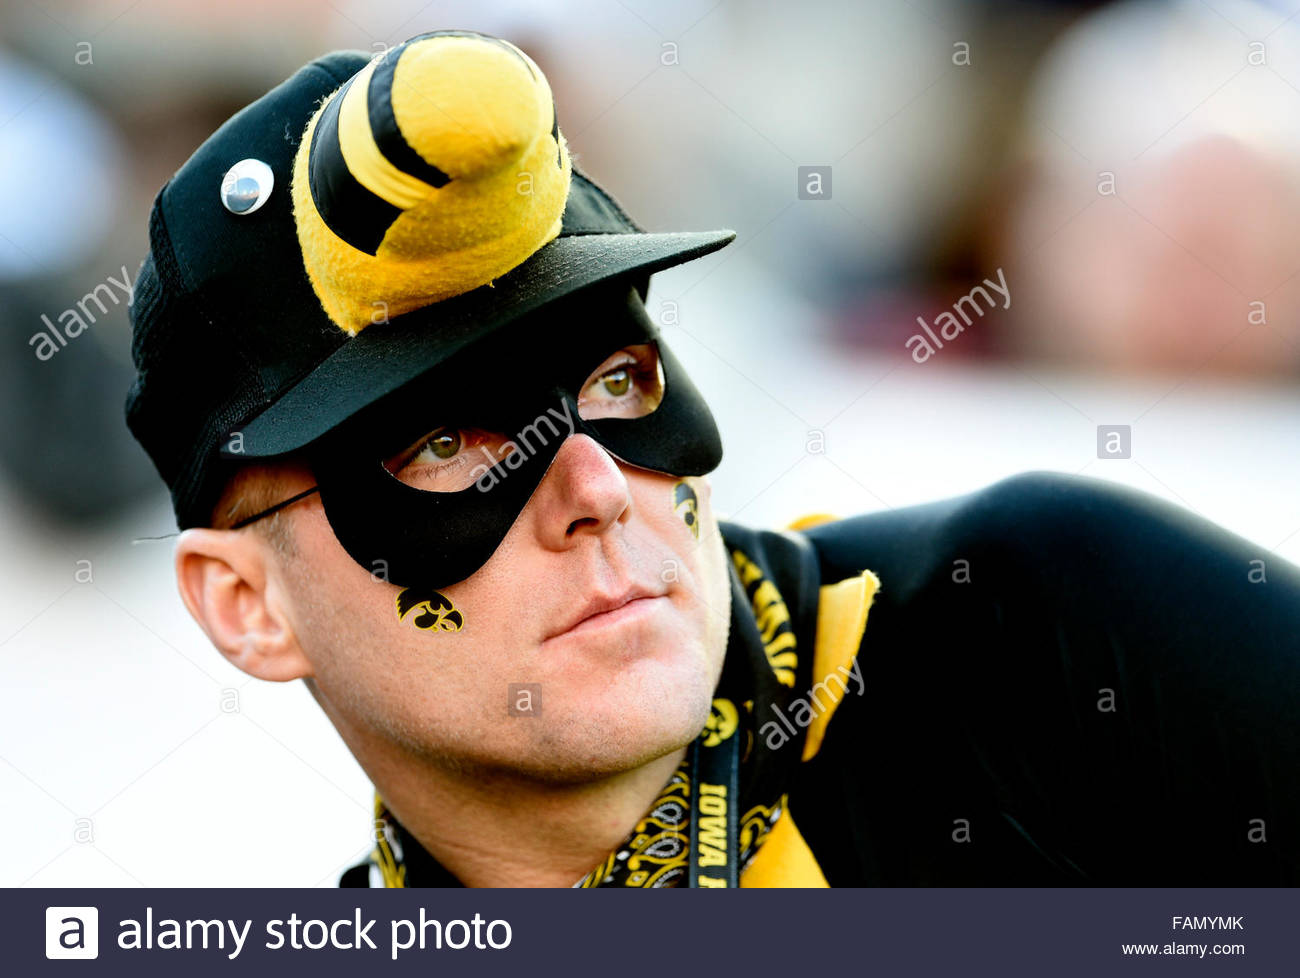 Pasadena, California, USA. 01st Jan, 2016. Dejected Iowa fan in the first half of the 102nd Rose Bowl game against - Stock Image